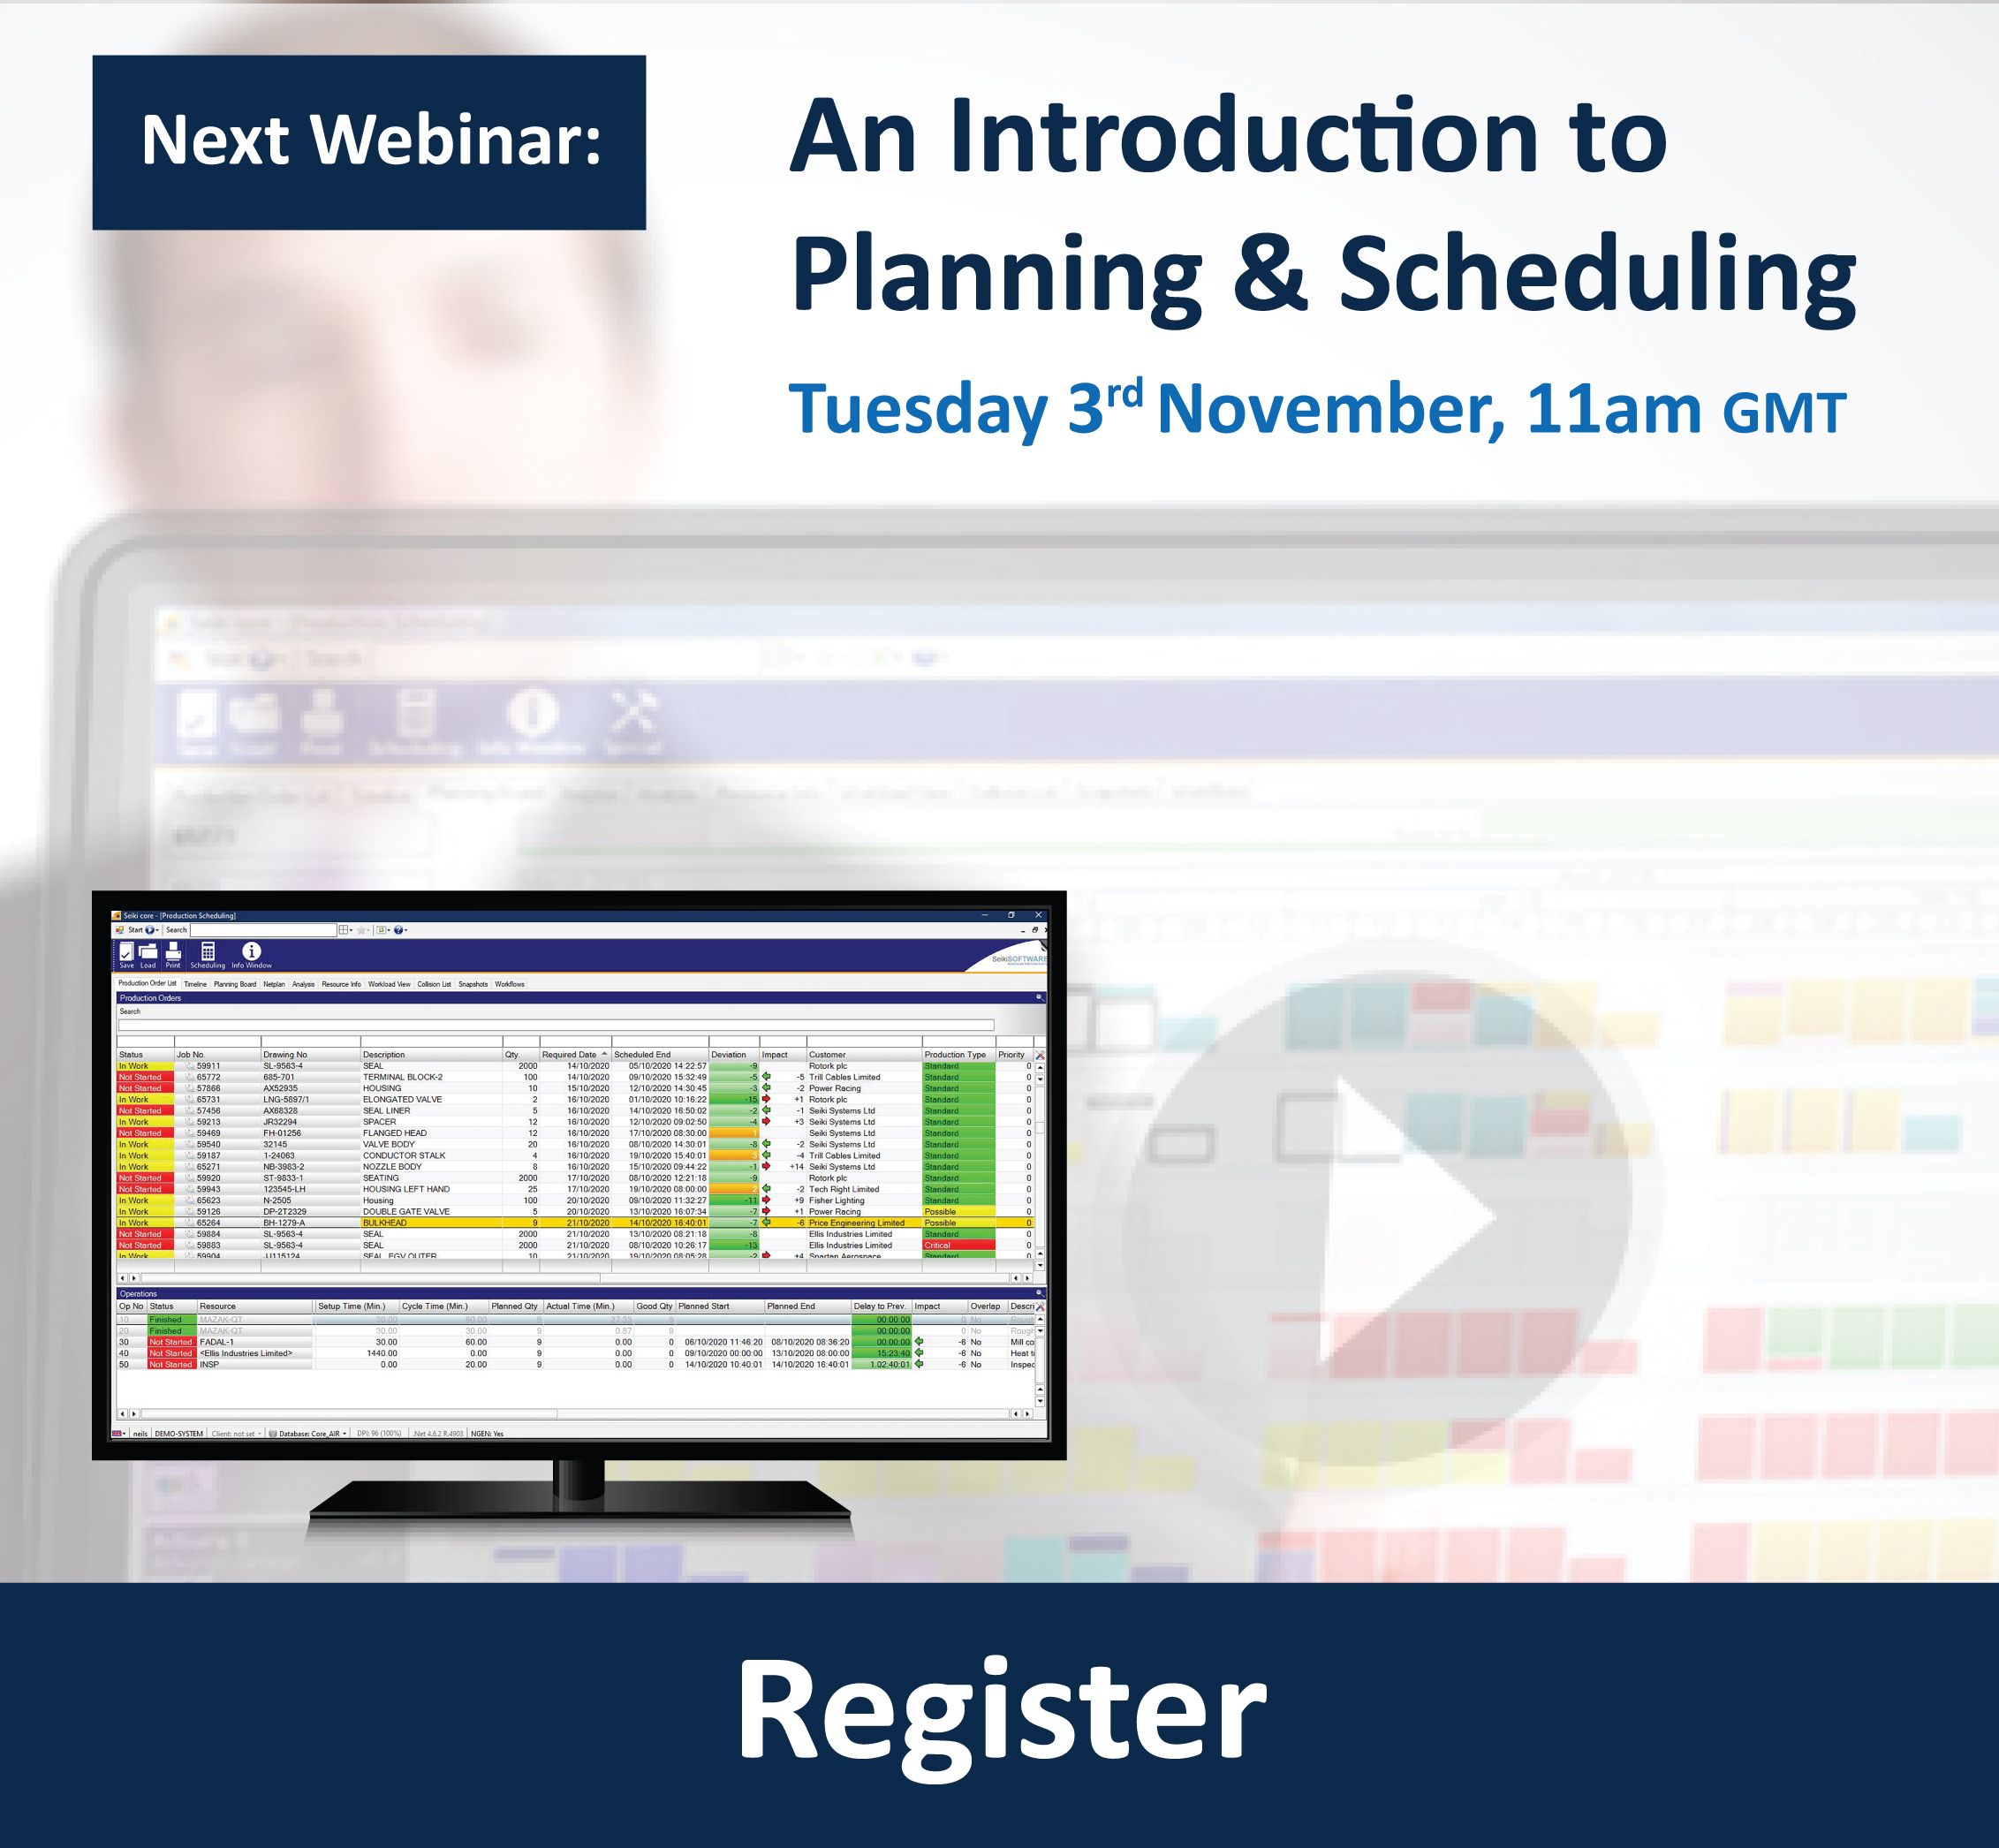 Seiki Systems - An Introduction to Planning and Scheduling